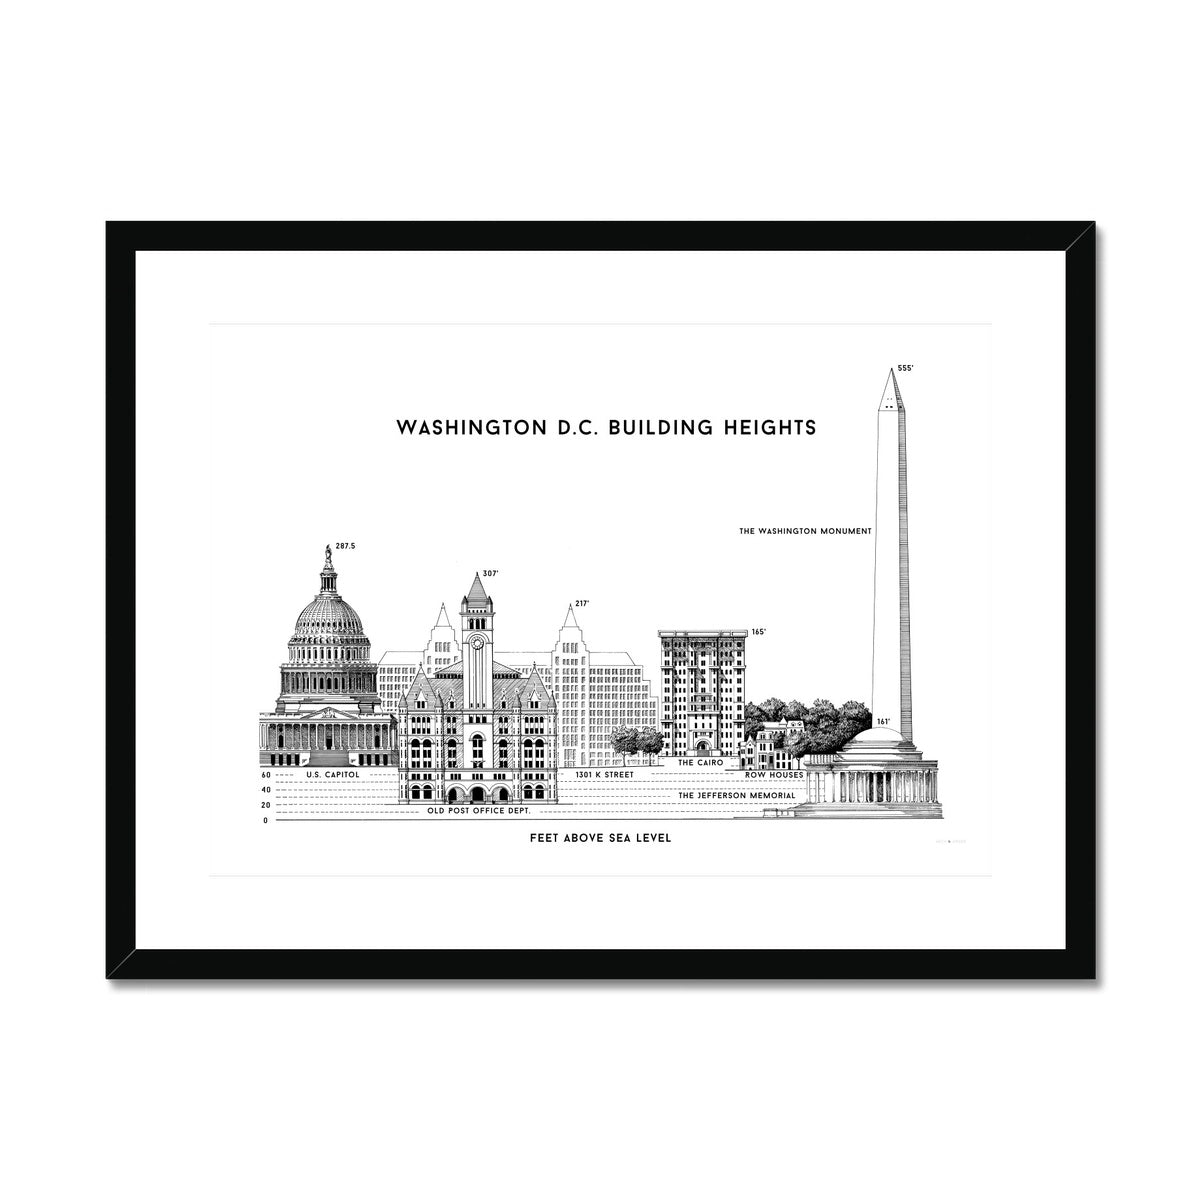 Washington D.C. Building Heights Comparison - White -  Framed & Mounted Print